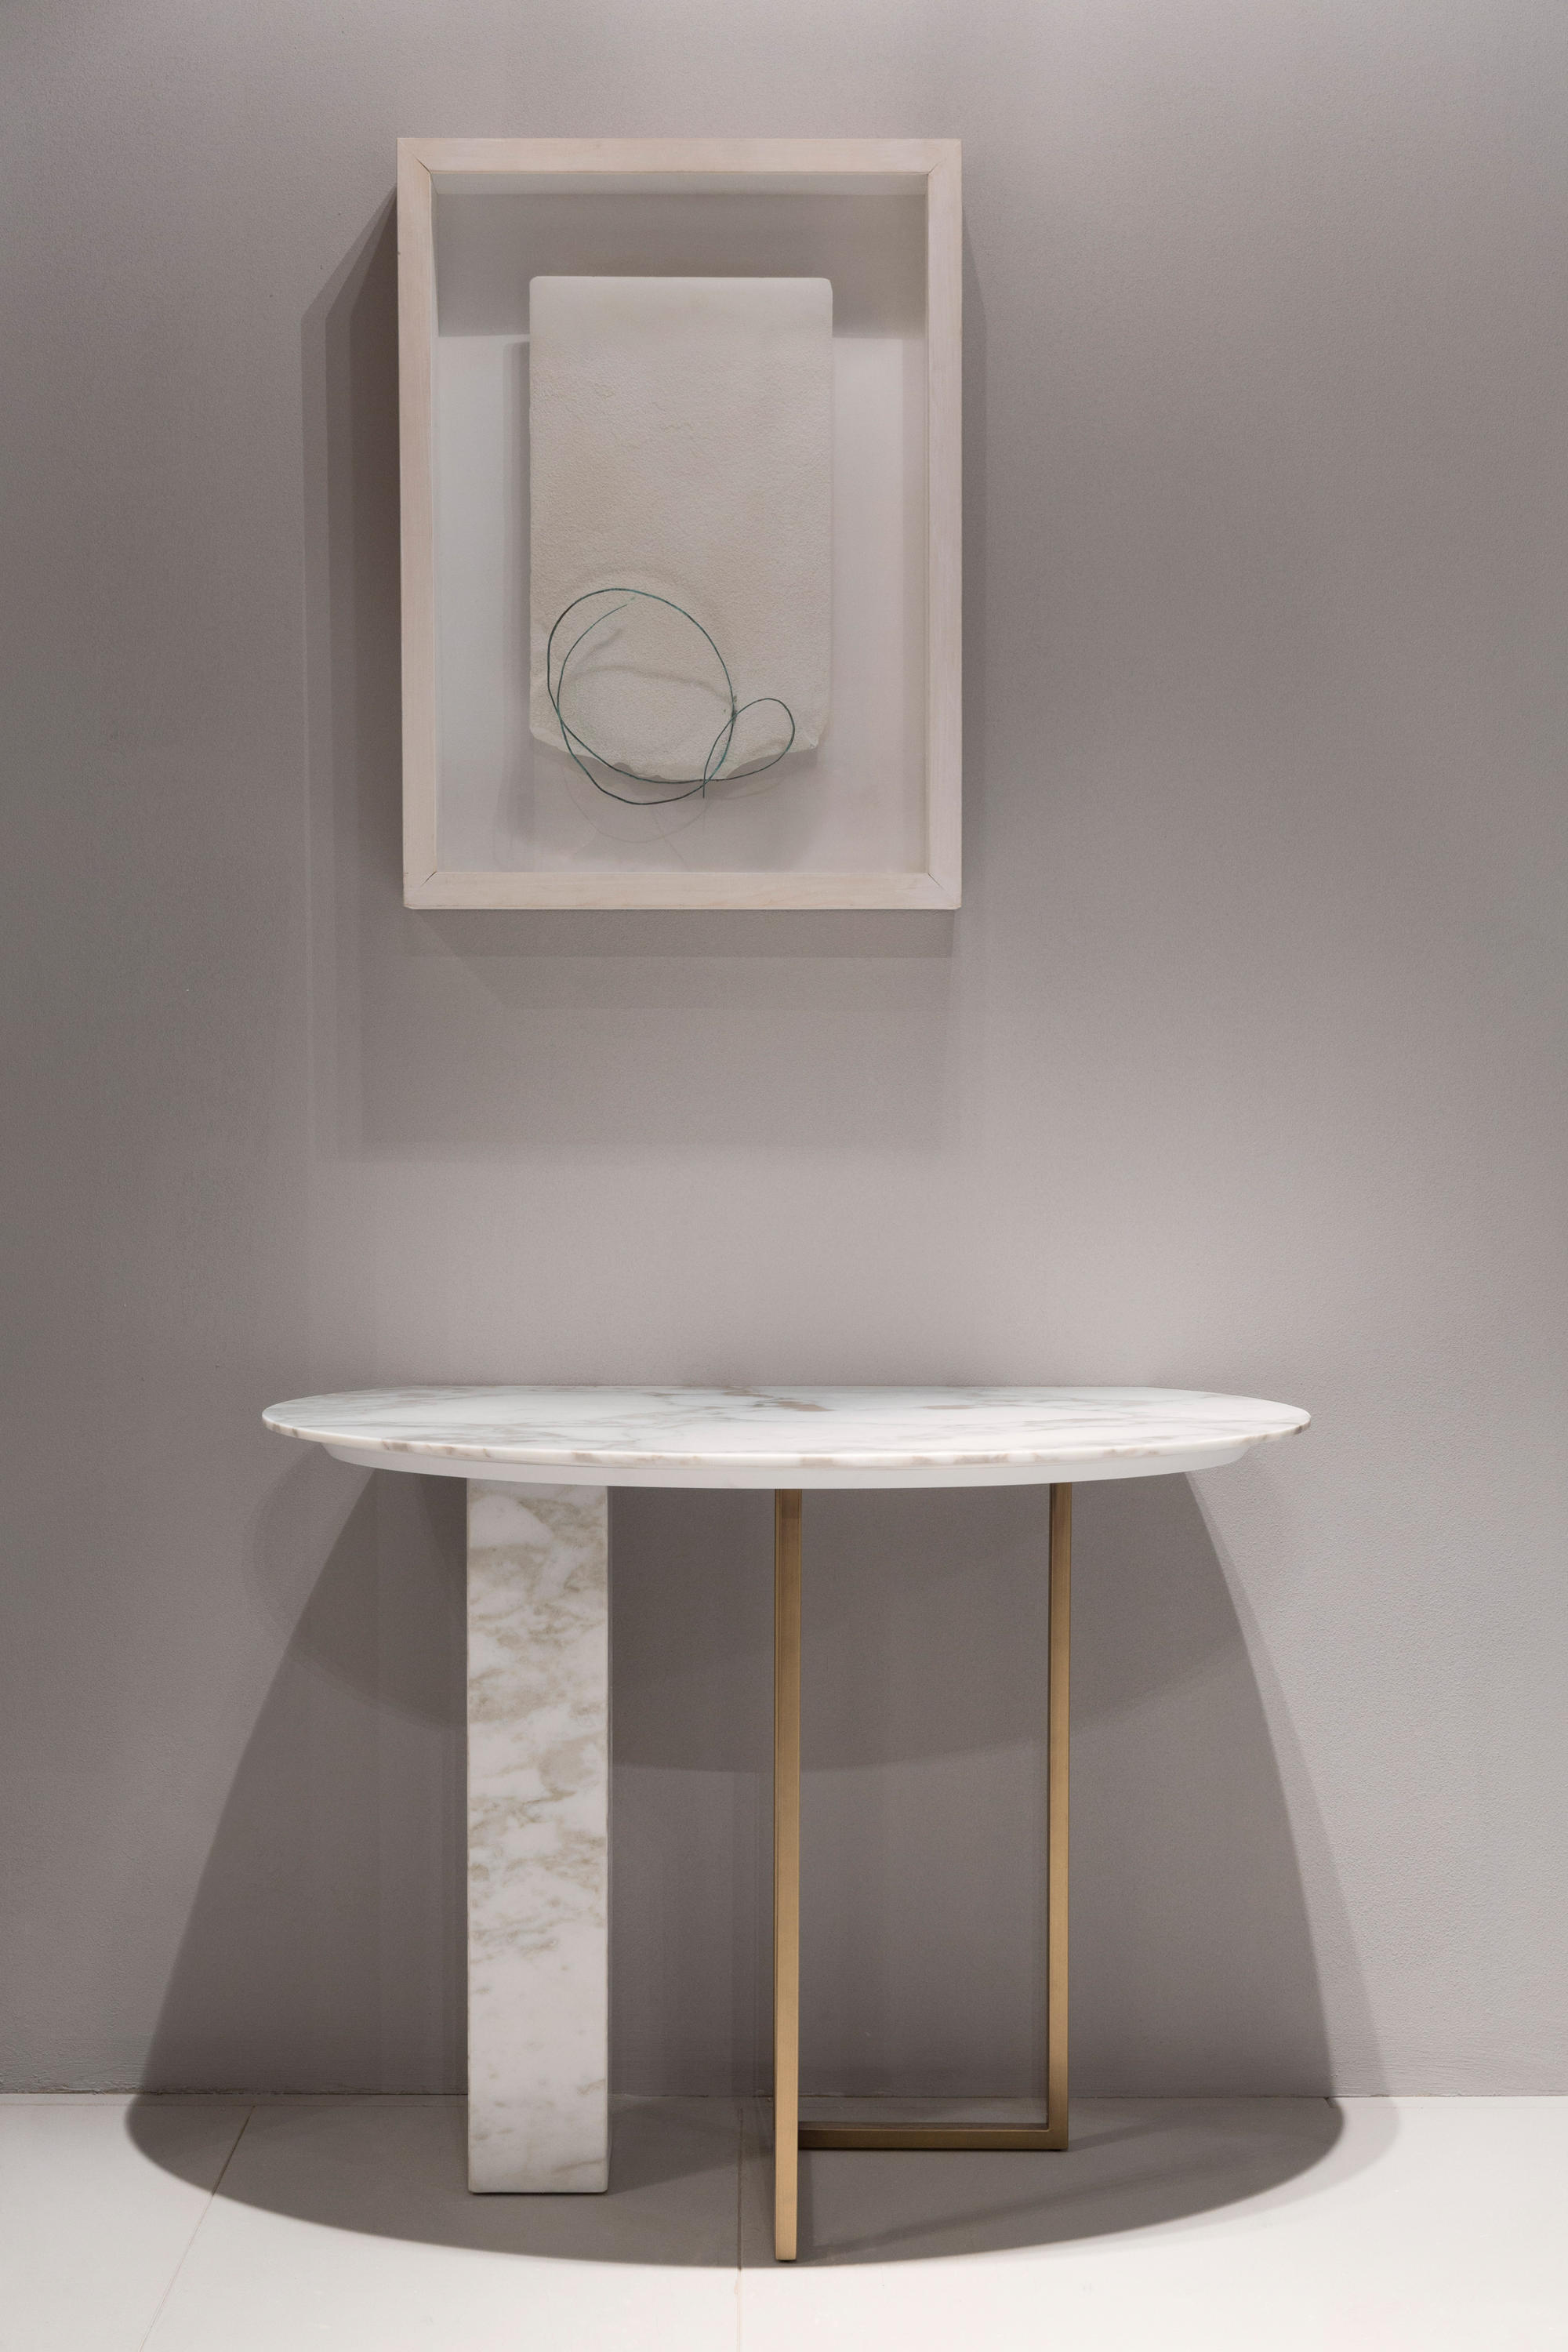 10 unparalleled marble console tables marble console table 10 unparalleled marble console tables 3 10 unparalleled marble console tables 1 geotapseo Choice Image